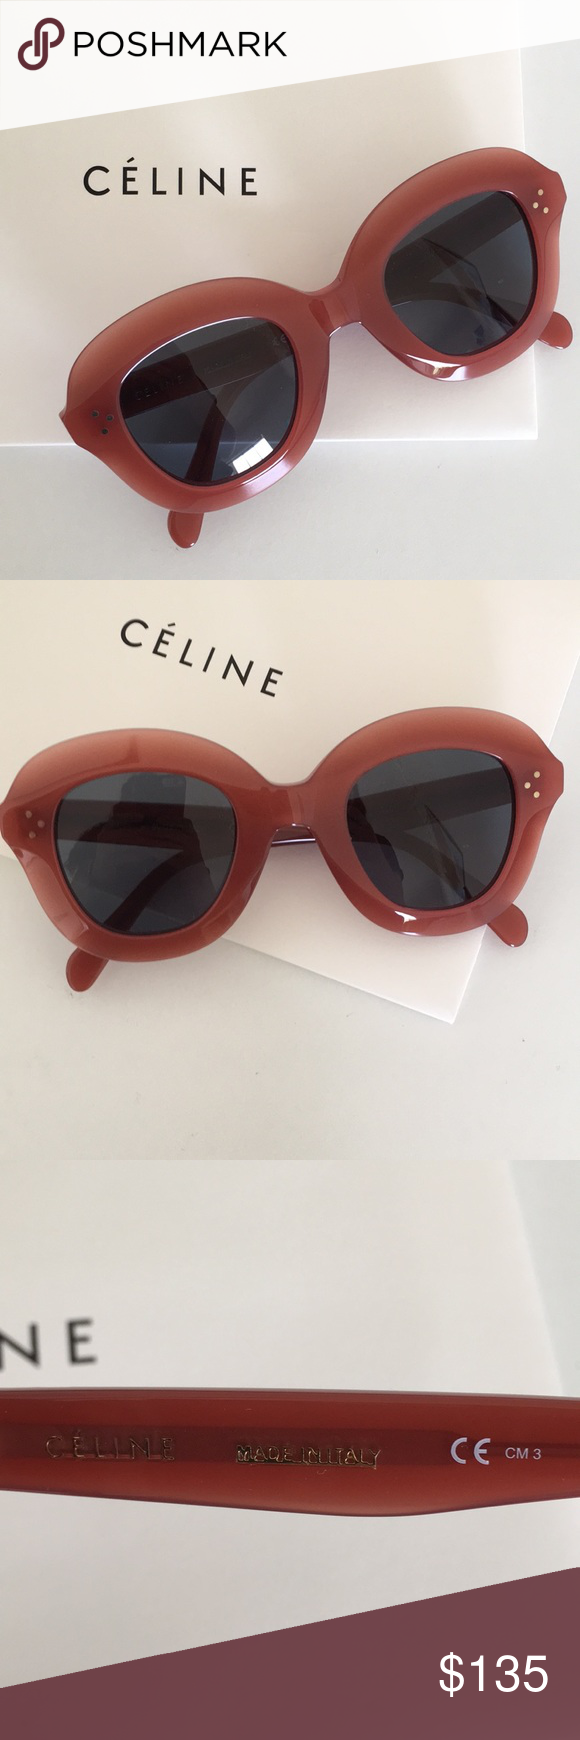 9bd11d0e9282 Spotted while shopping on Poshmark  Pink Céline Sunglasses!  poshmark   fashion  shopping  style  Celine  Accessories